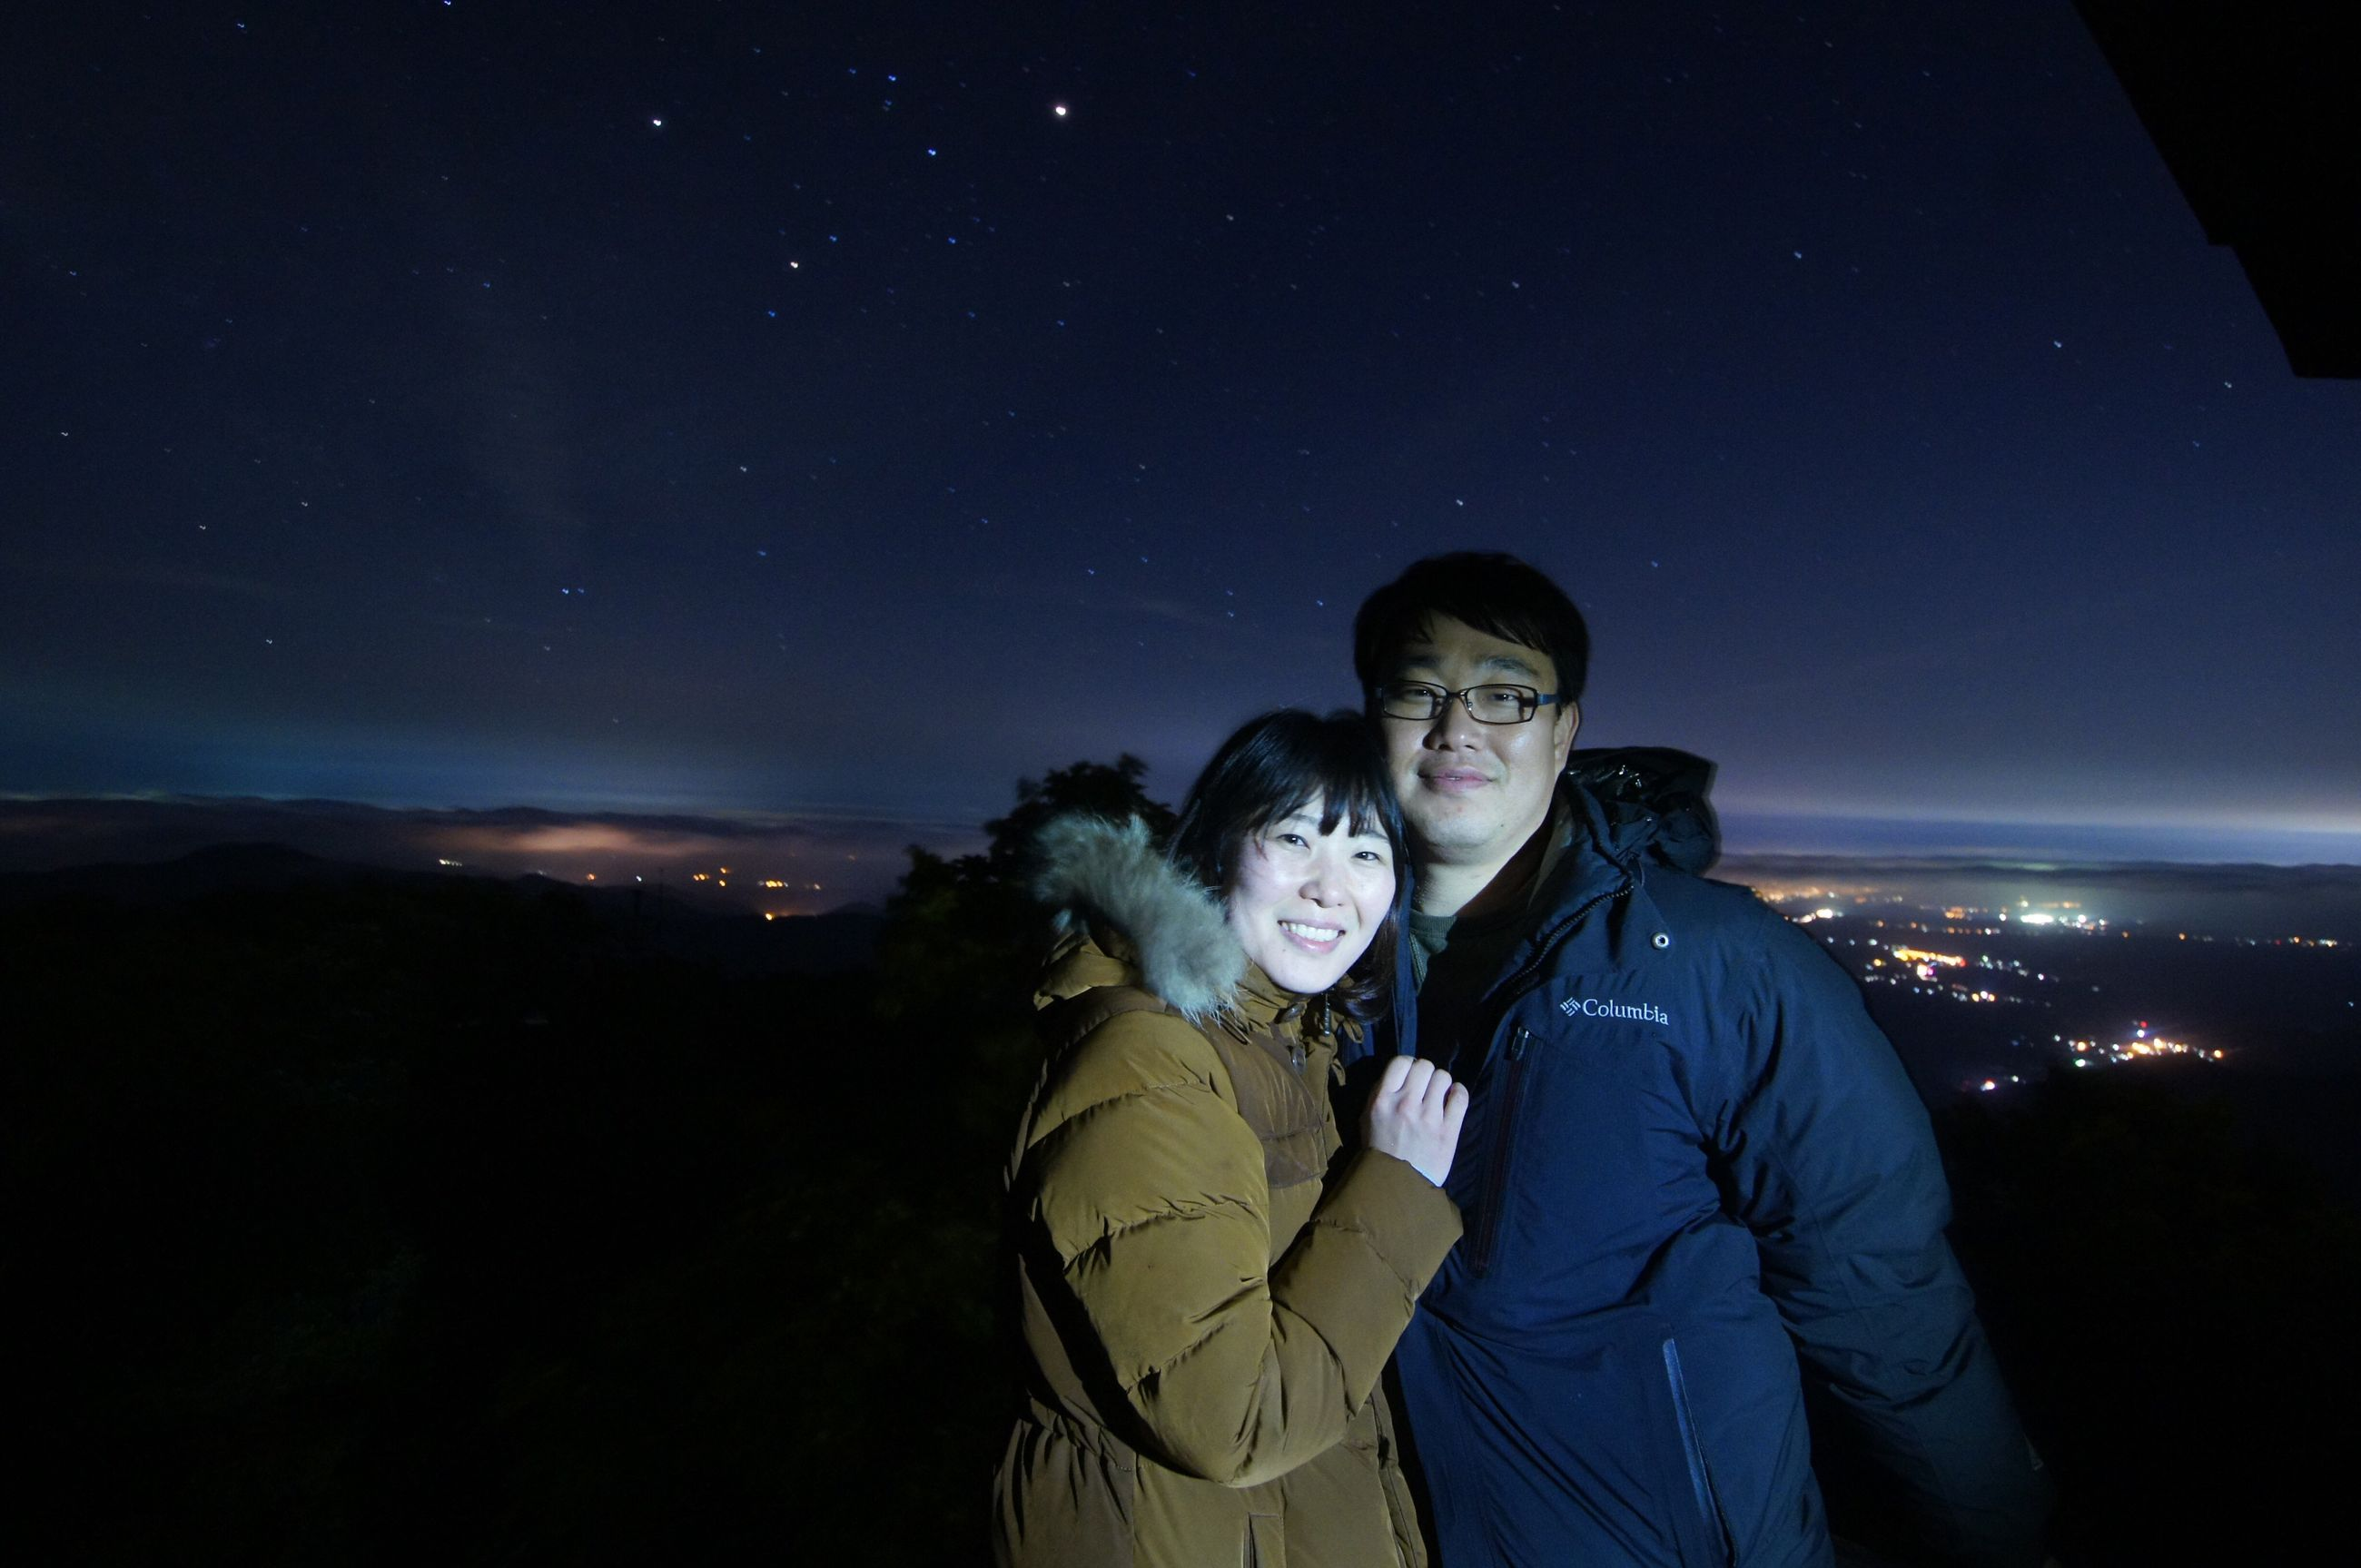 night, star - space, illuminated, standing, waist up, low angle view, star field, sky, casual clothing, enjoyment, tourism, exploration, astronomy, vacations, adventure, young adult, galaxy, space, nature